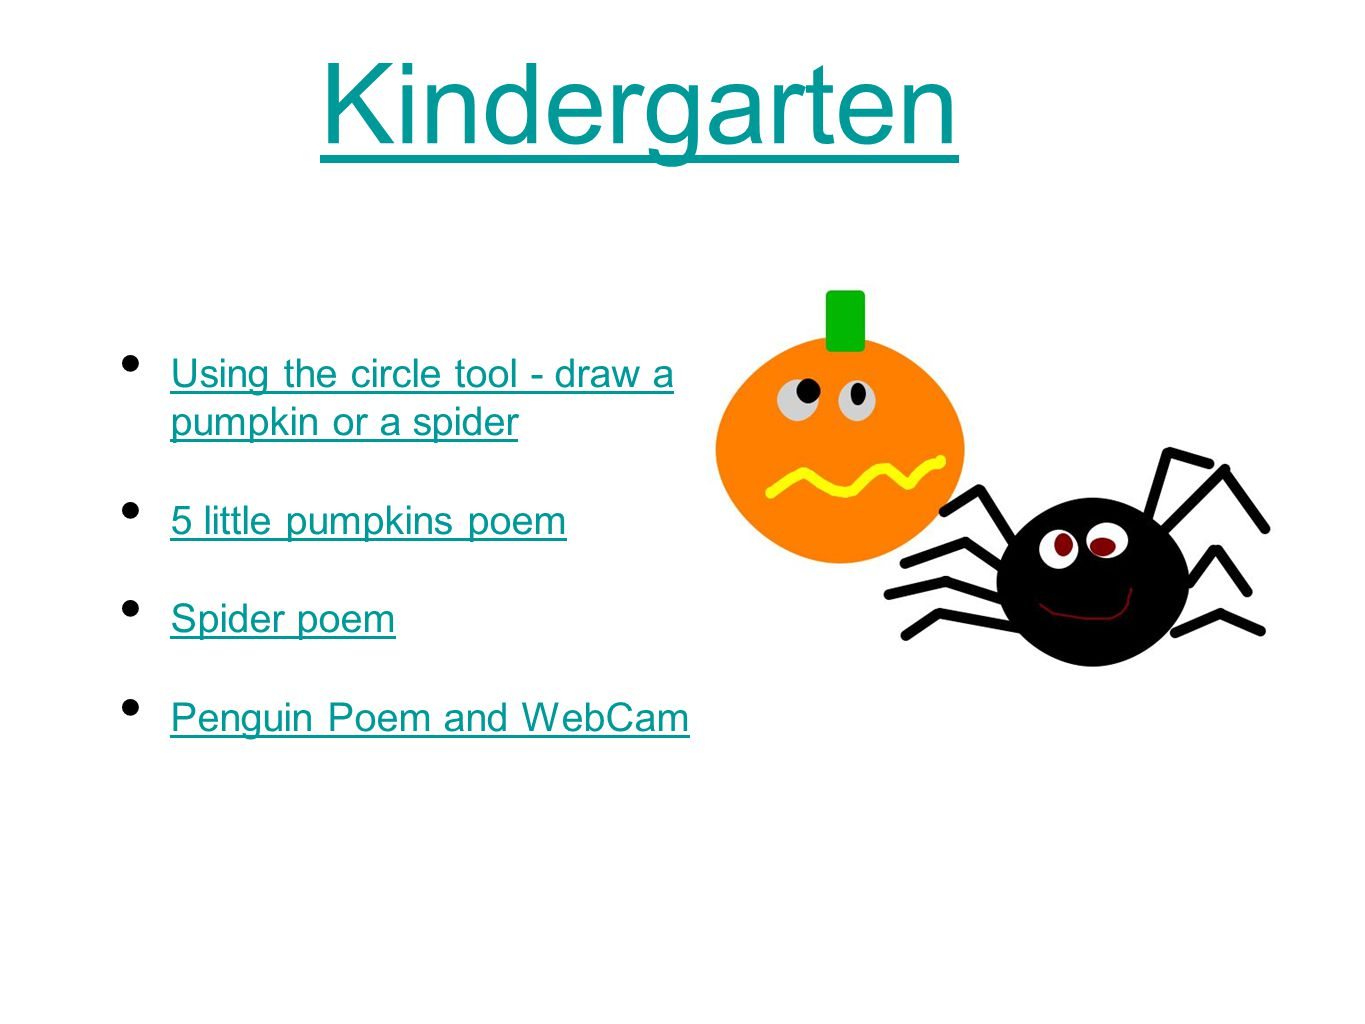 Kindergarten Using the circle tool - draw a pumpkin or a spider